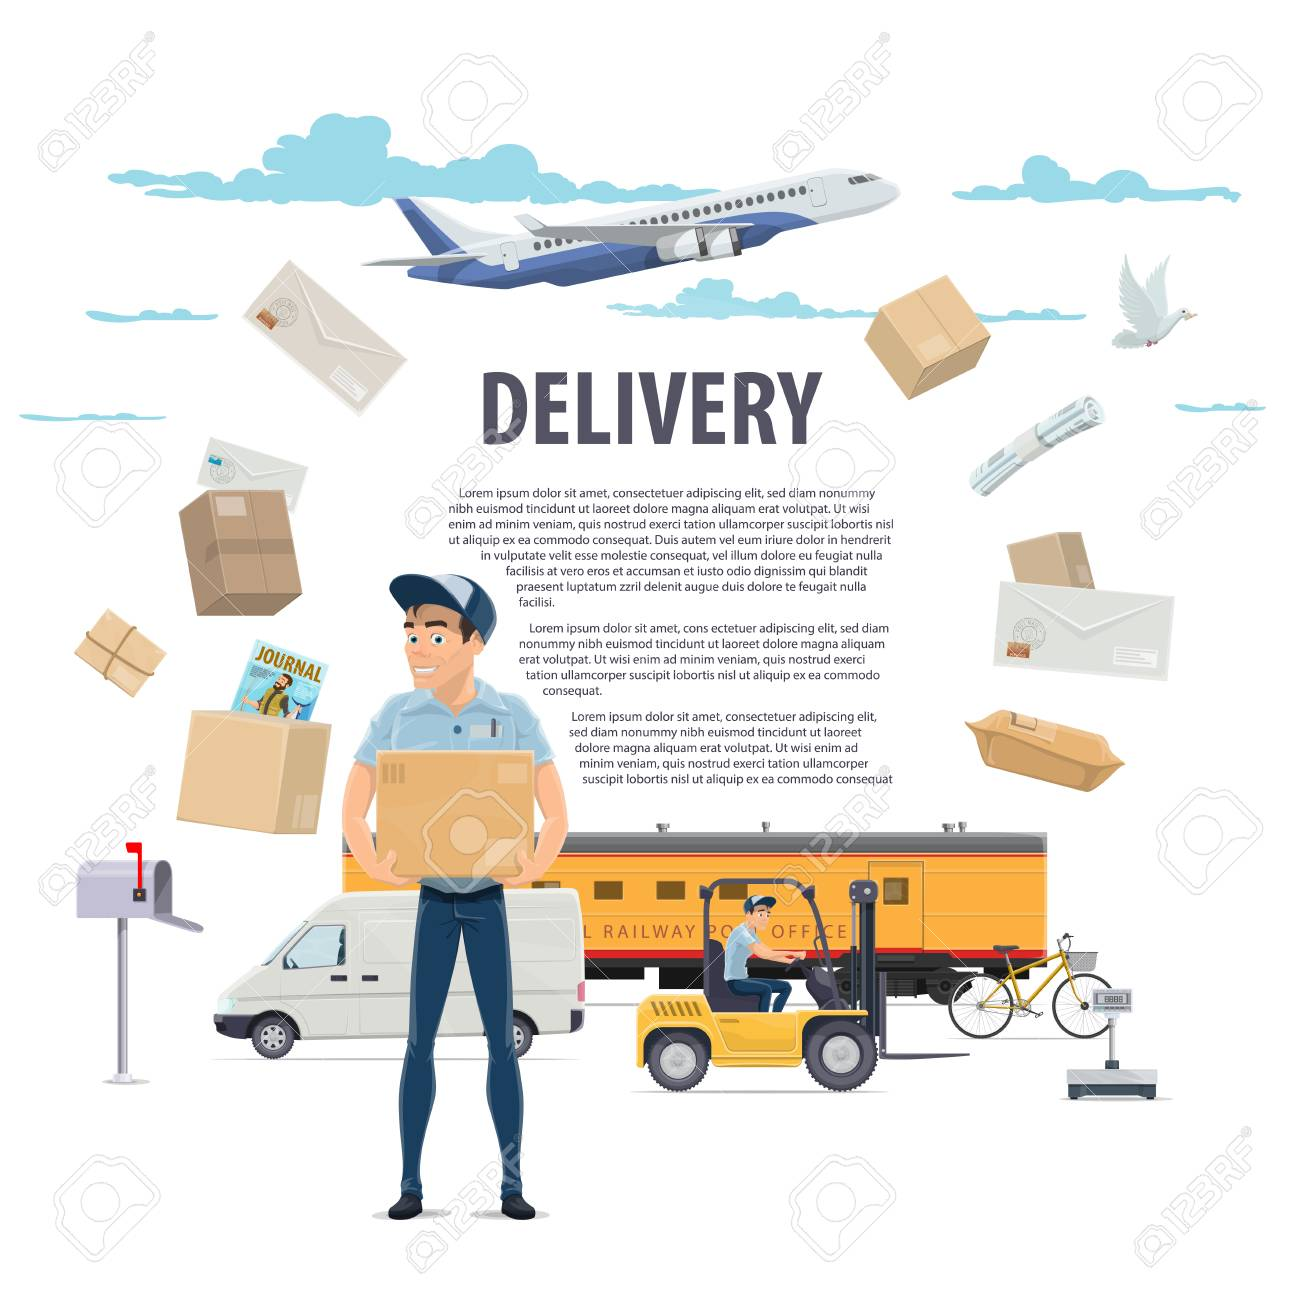 Post mail delivery and postman vector poster - 100029609